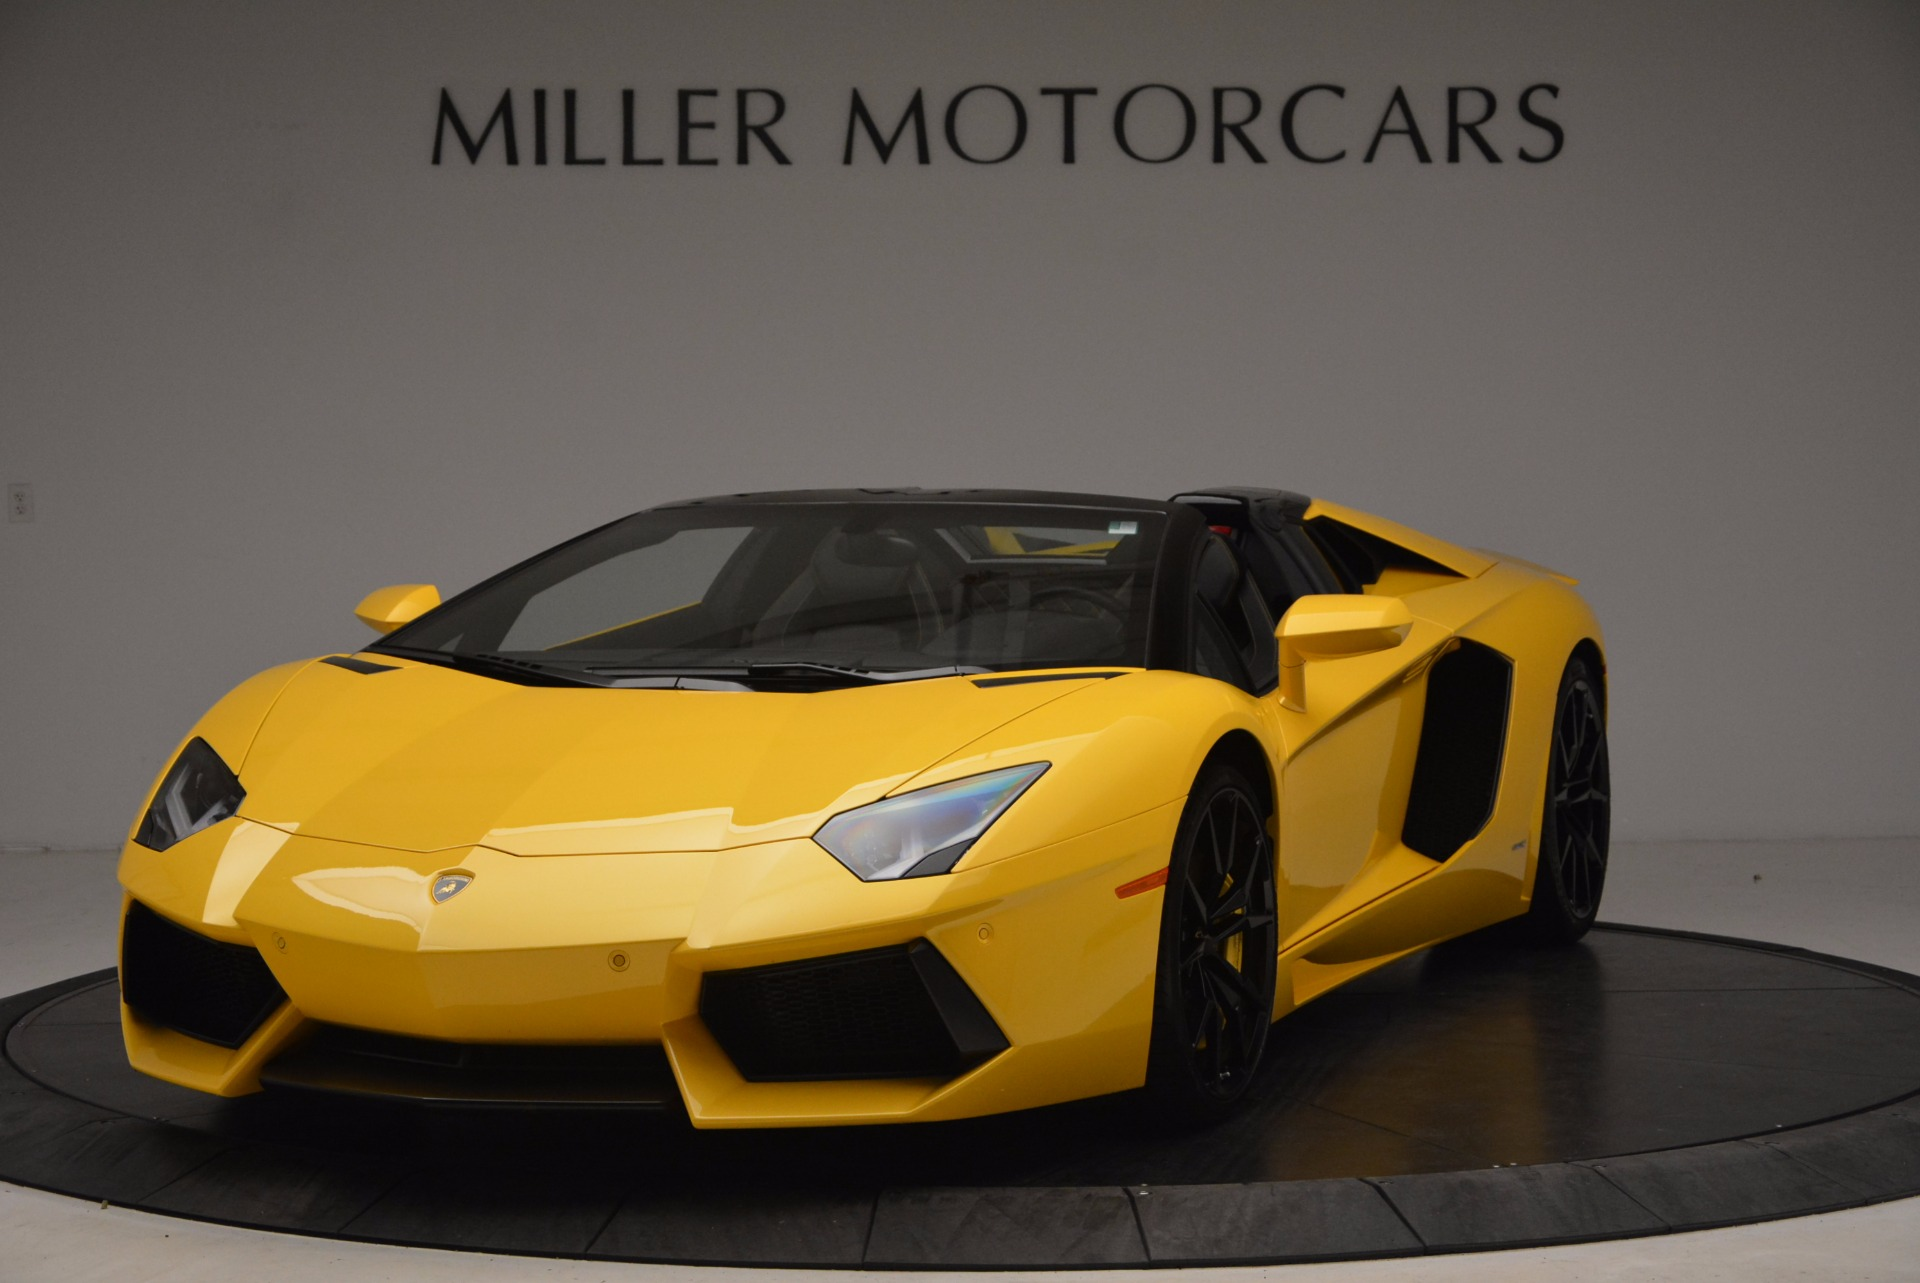 Used 2015 Lamborghini Aventador LP 700-4 Roadster for sale Sold at Pagani of Greenwich in Greenwich CT 06830 1